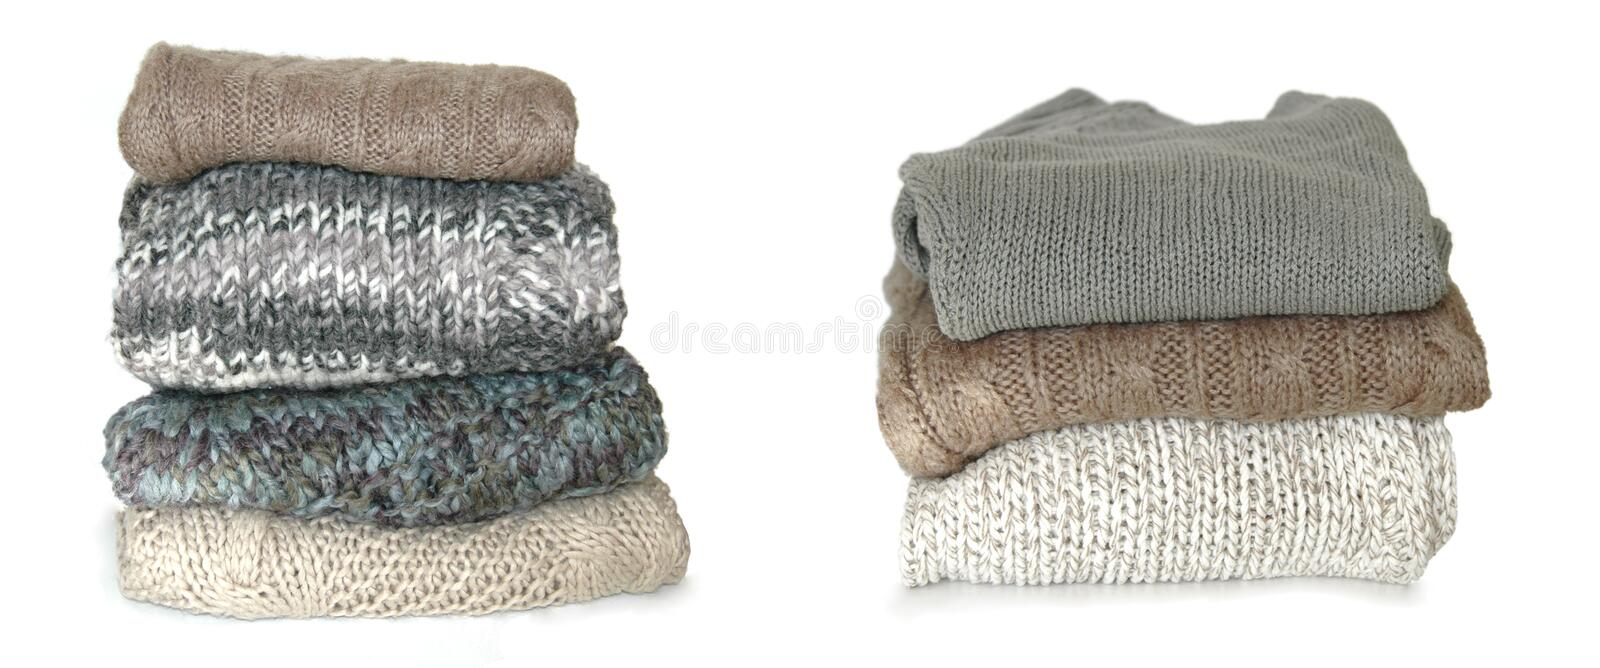 Download Folded sweaters stock photo. Image of winter, isolated - 17016284